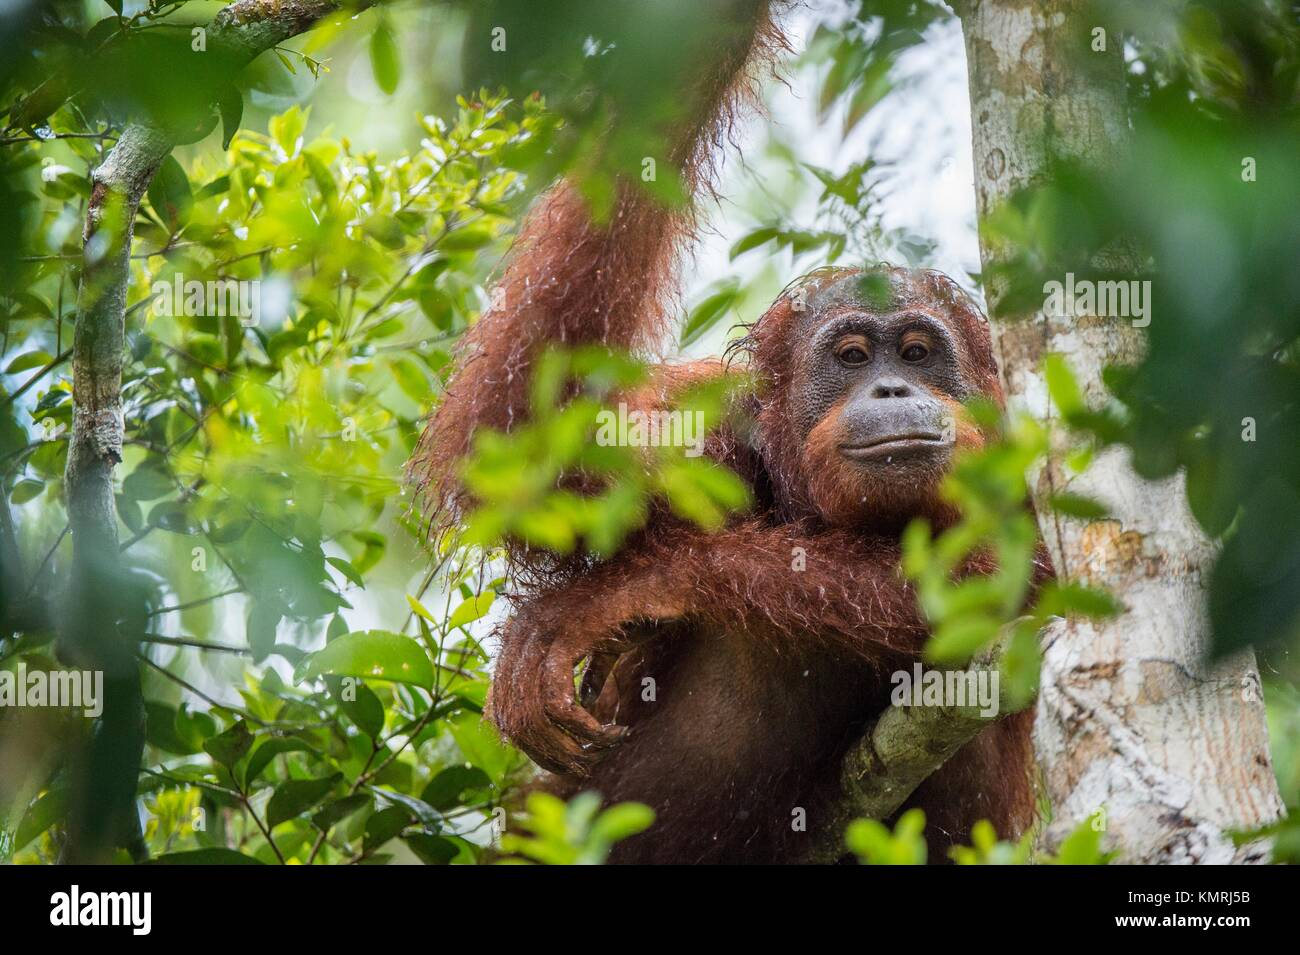 Bornean orangutan (Pongo pygmaeus) under rain on the tree in the wild nature. Central Bornean orangutan ( Pongo Stock Photo